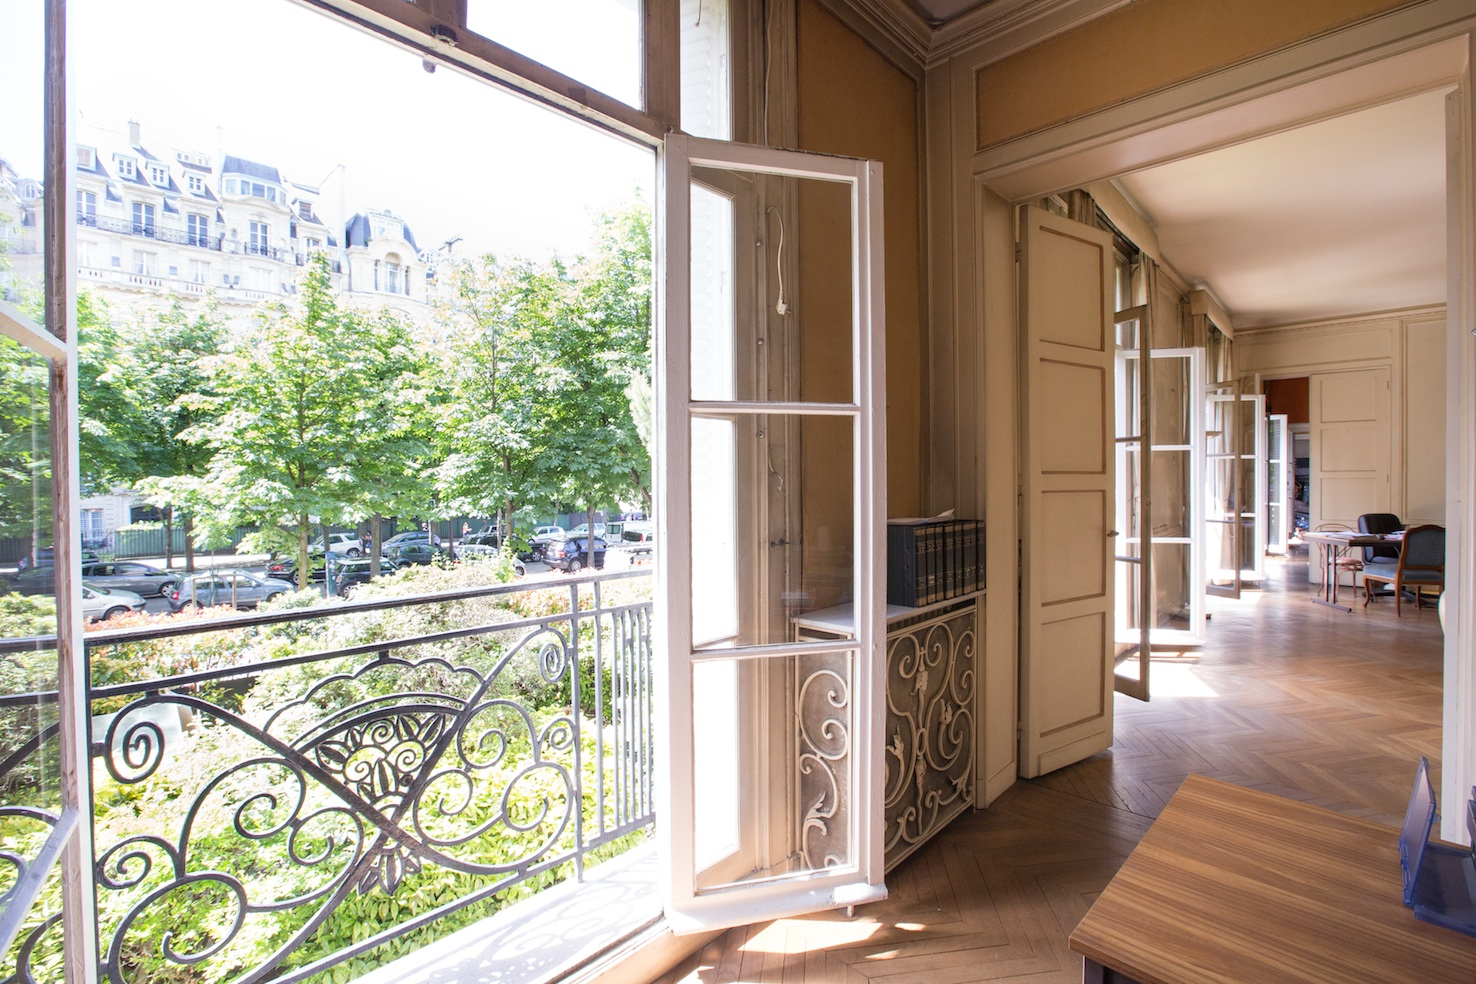 Property For Sale at Mairie du 16è - id. 1042